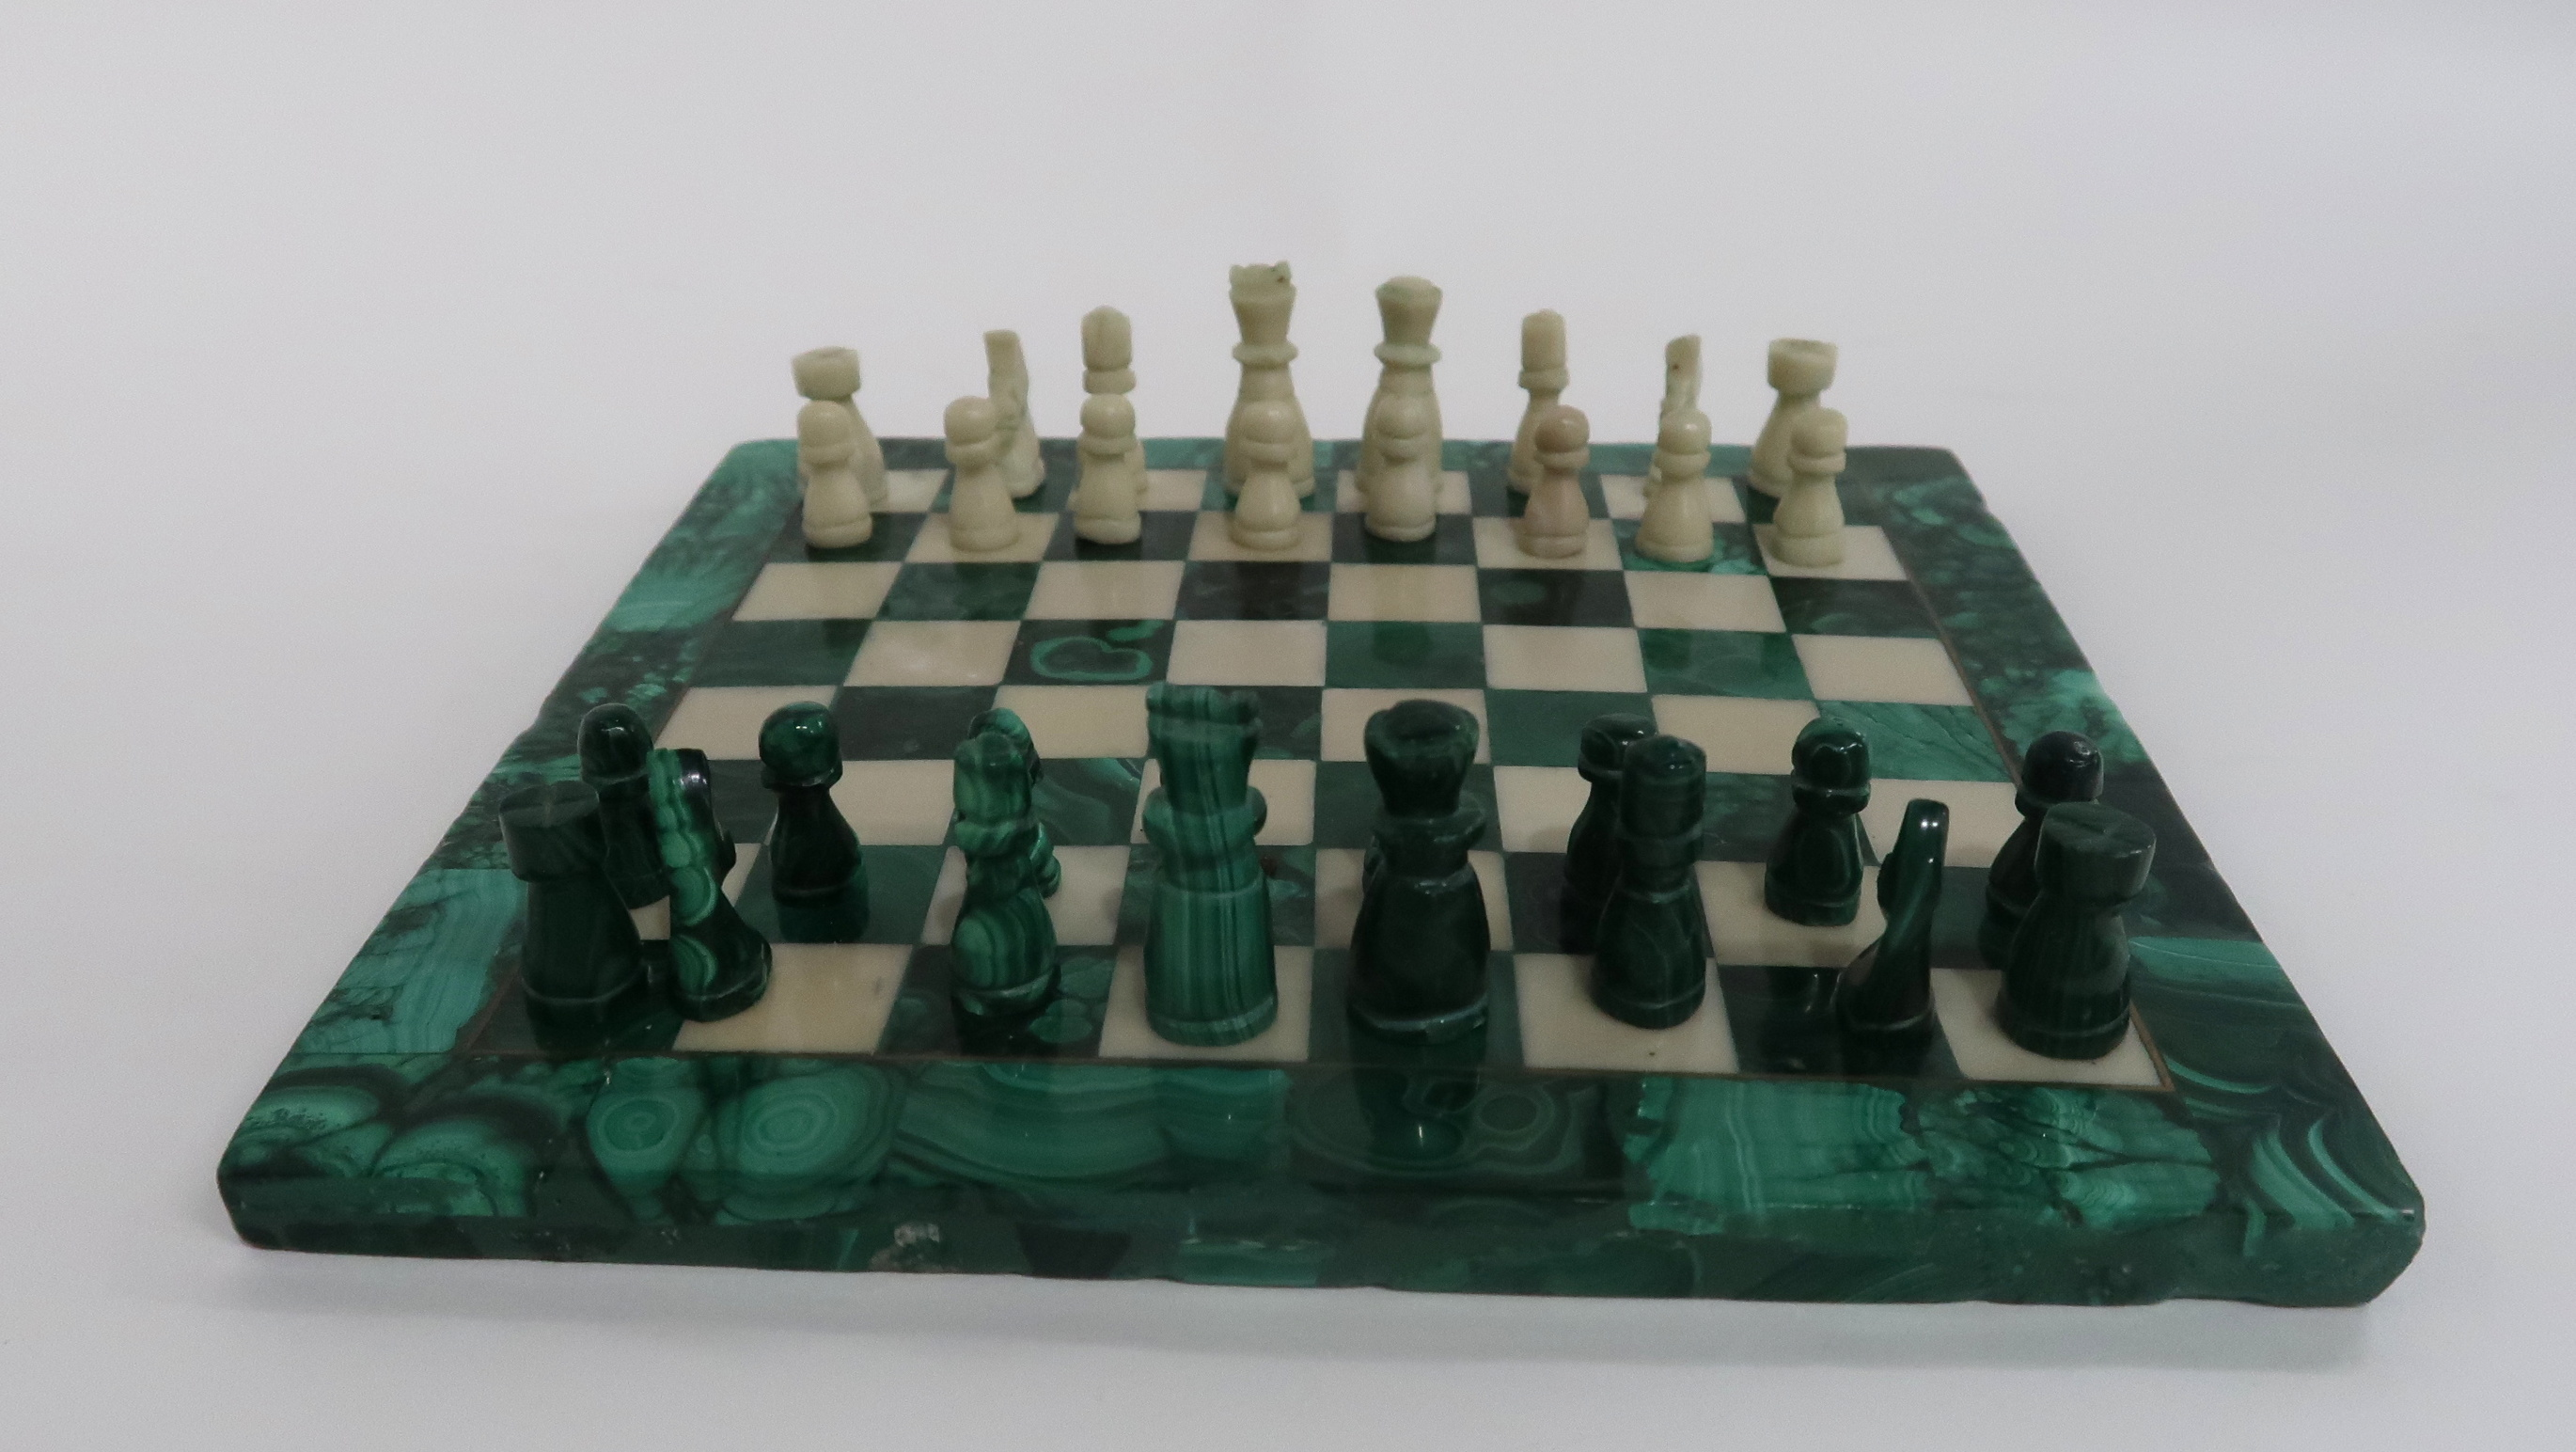 A MINIATURE MALACHITE CHESS SET AND BOARD 19cm square Condition Report: Available upon request - Image 3 of 3